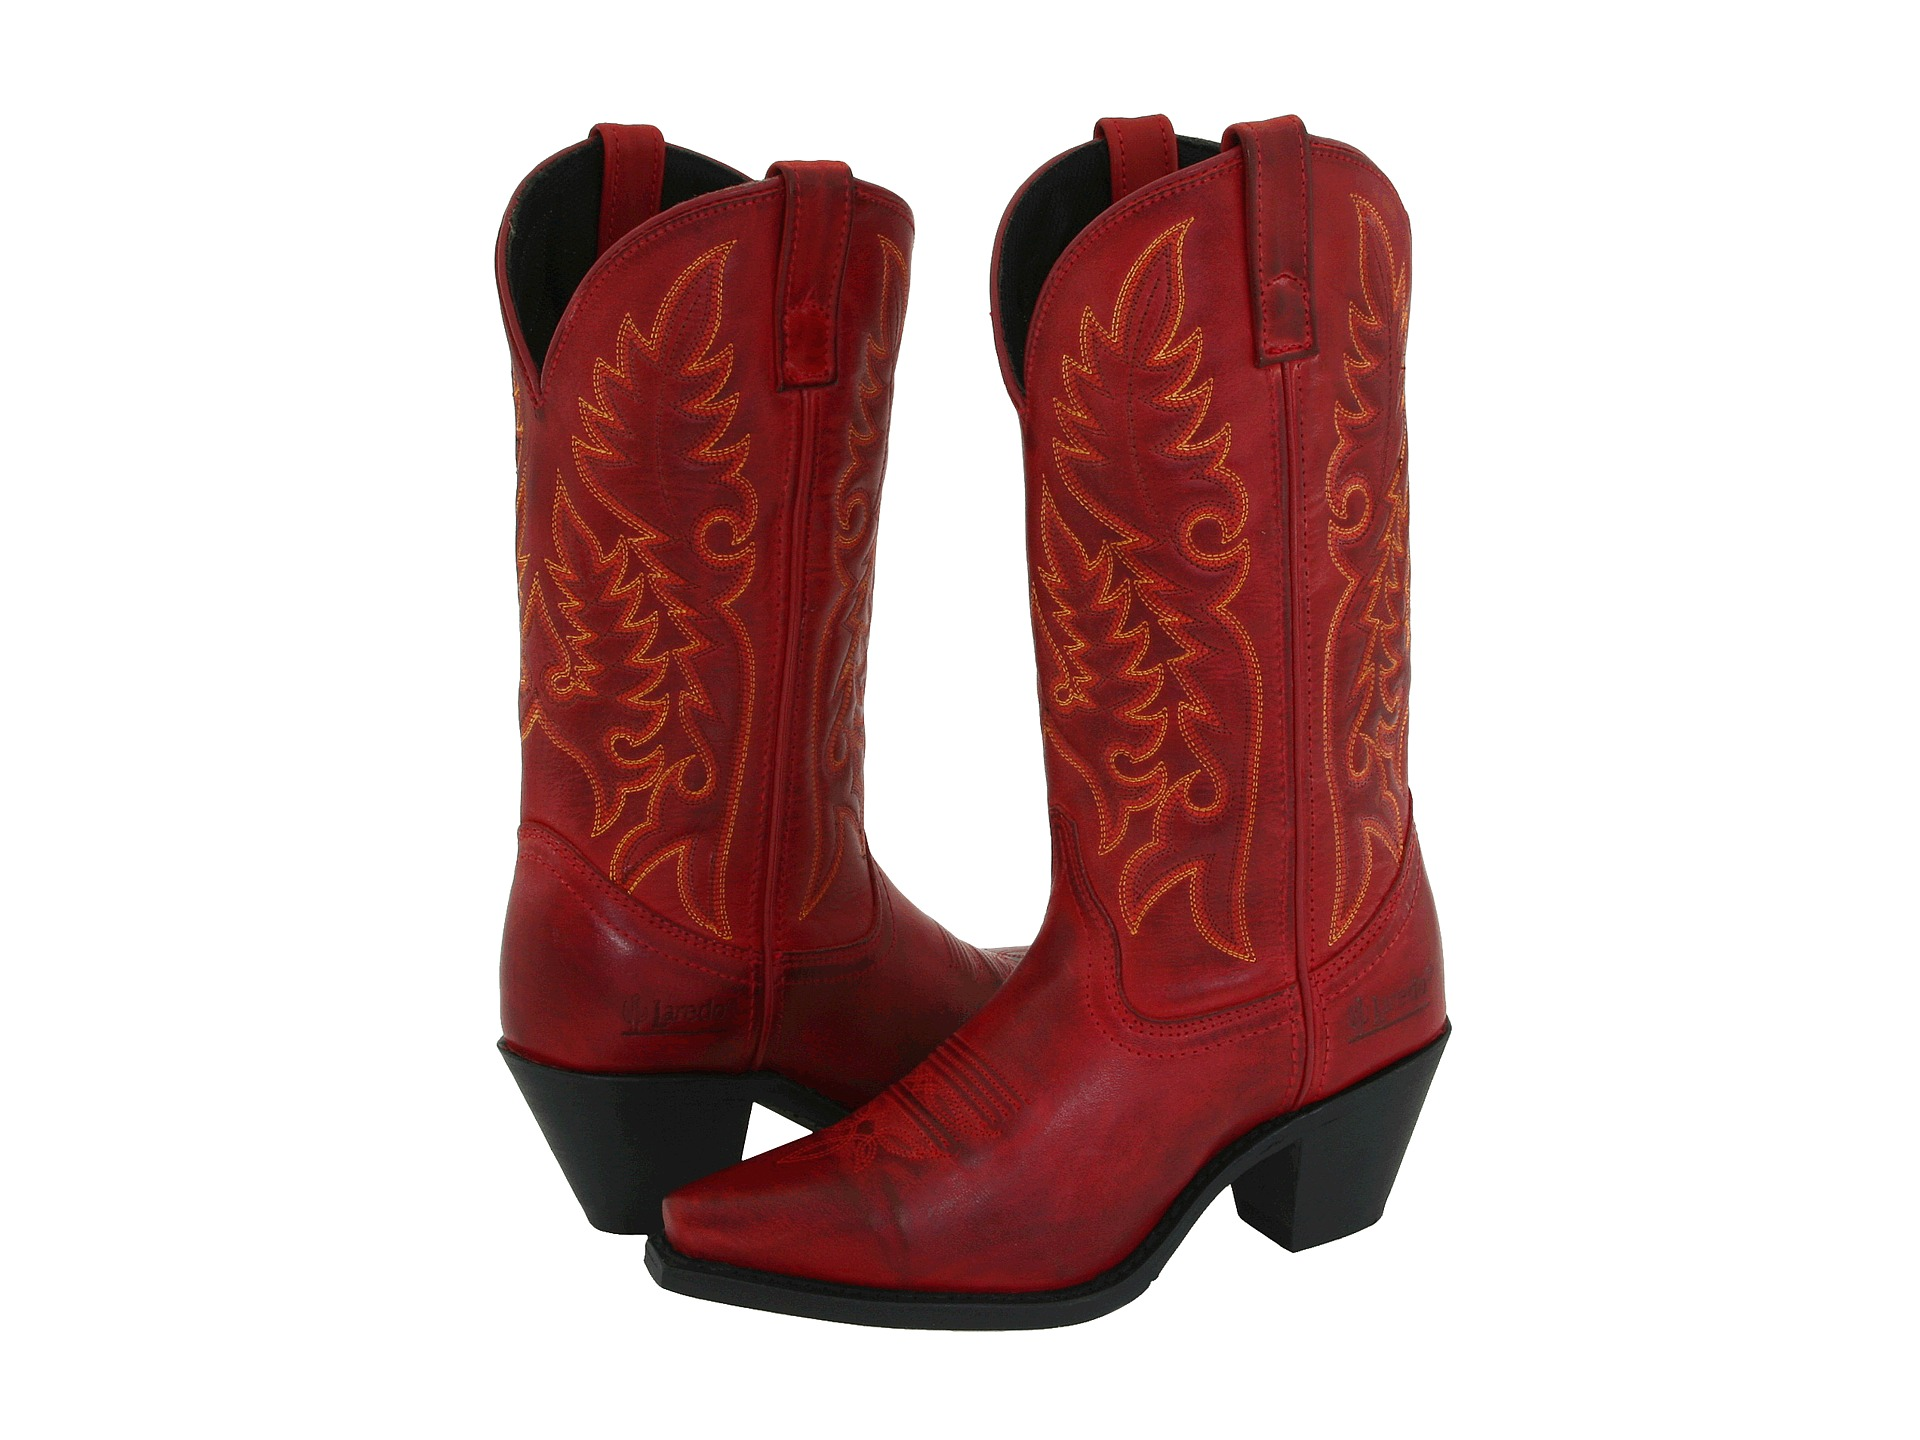 Excellent Laredo Western Boots Womens Cross Point 13u0026quot; Shaft Brown Turq 52032 - Pricefalls.com Marketplace